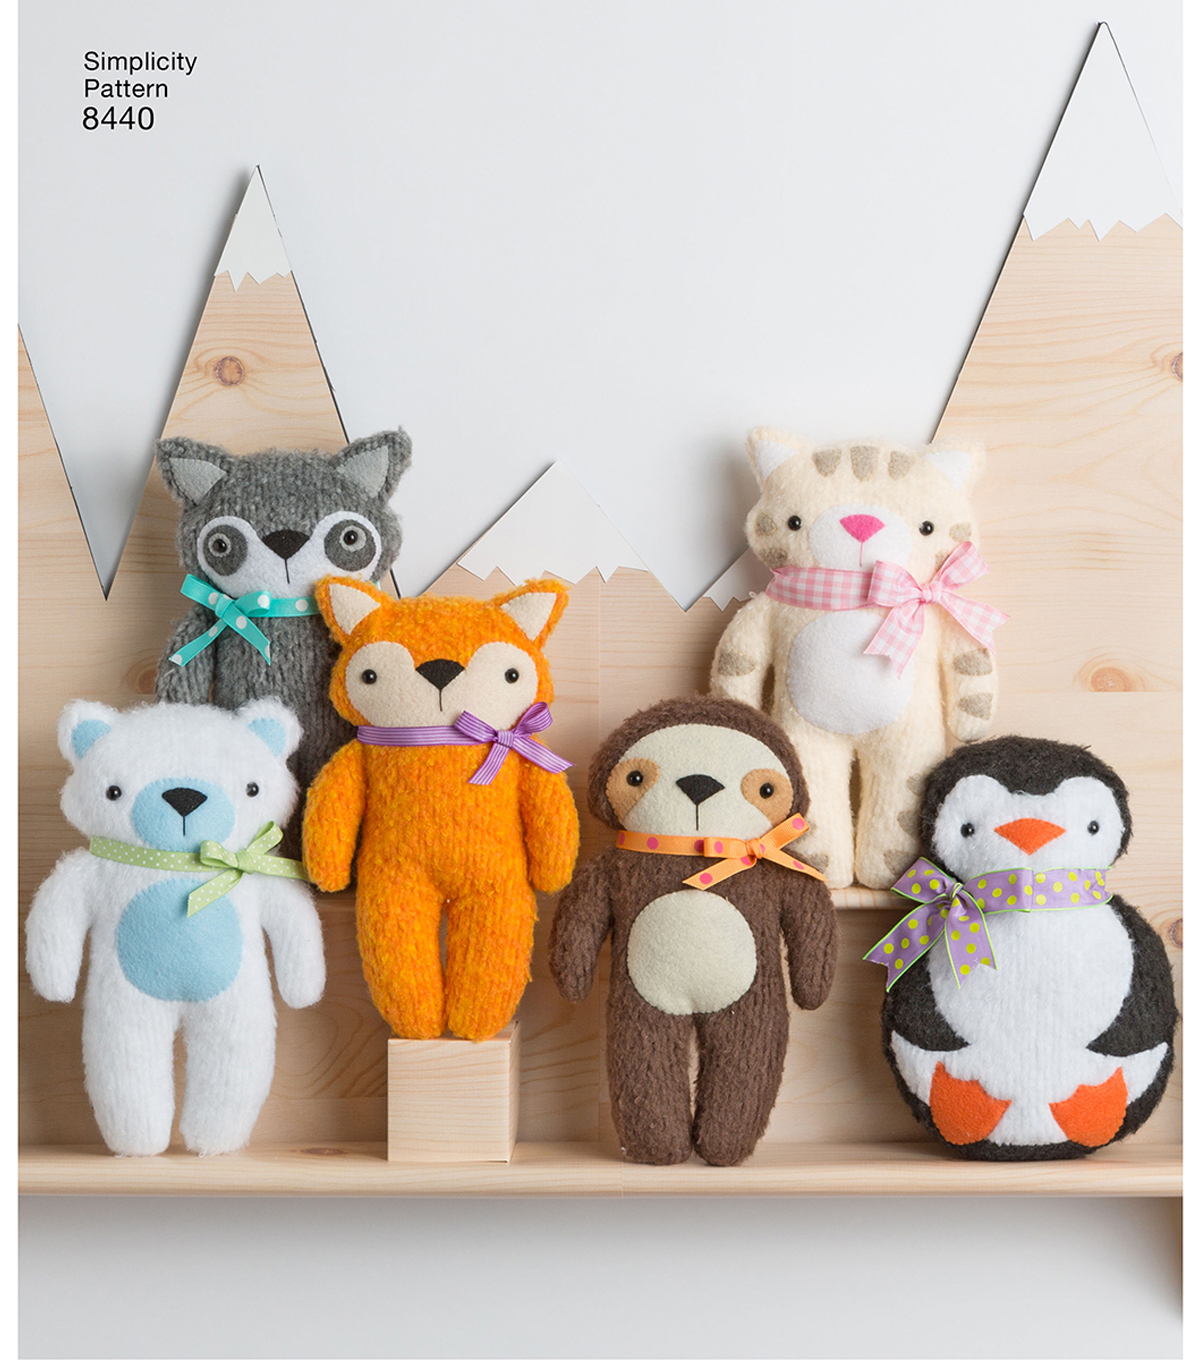 Stuffed Animal Patterns Simplicity New Inspiration Design